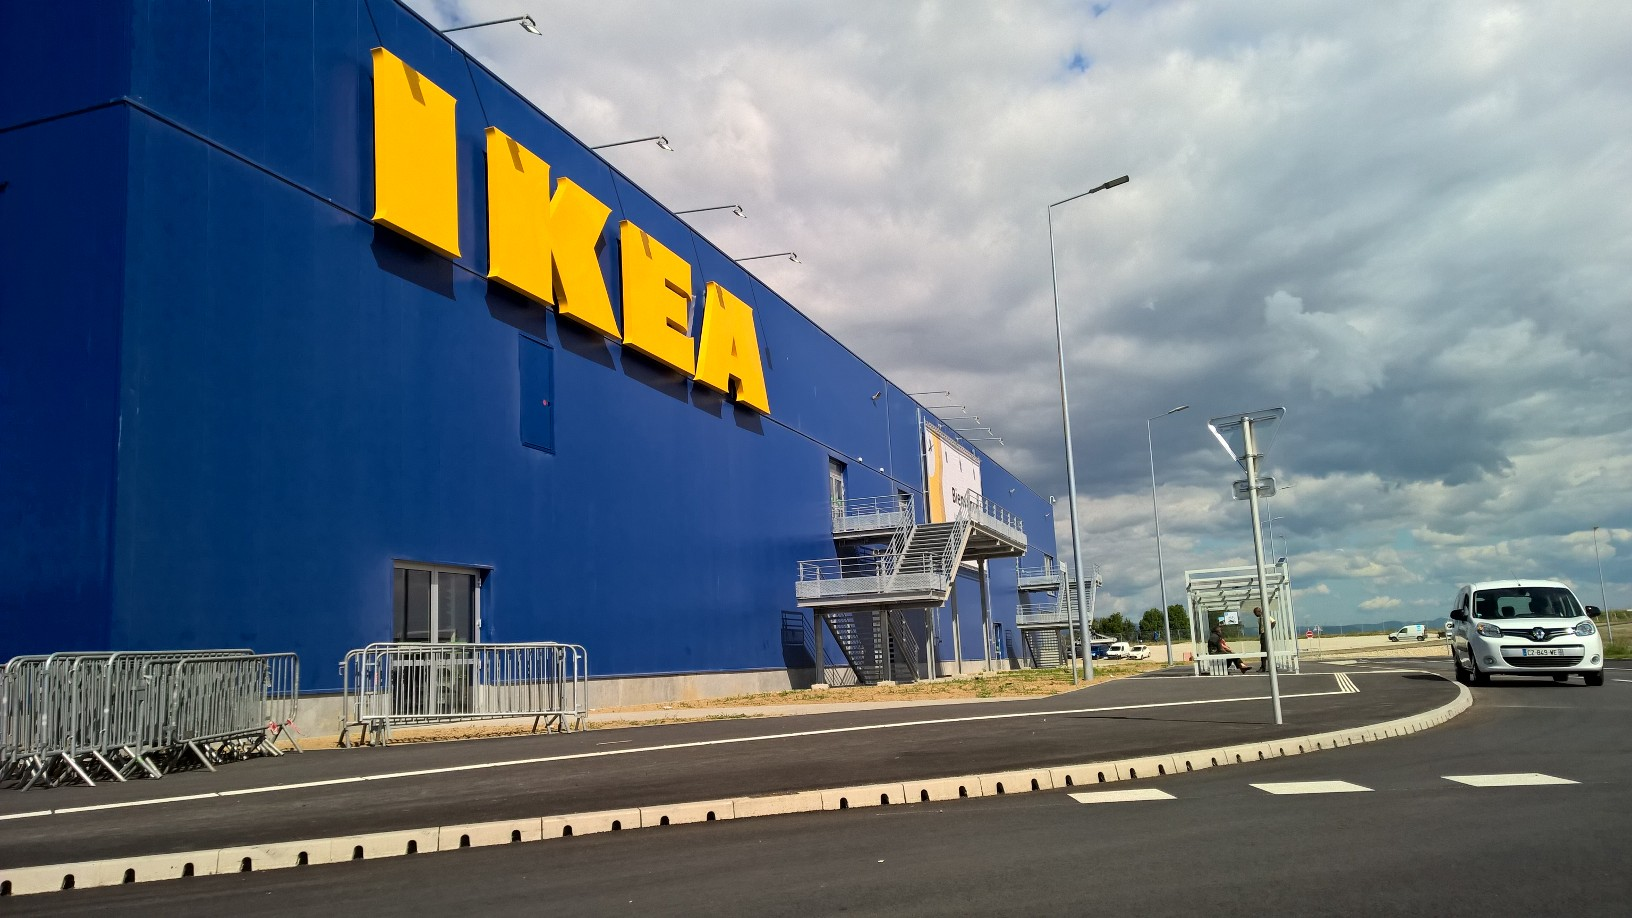 les solutions globales de drainage aco quipent le magasin et le parking ikea de mulhouse. Black Bedroom Furniture Sets. Home Design Ideas